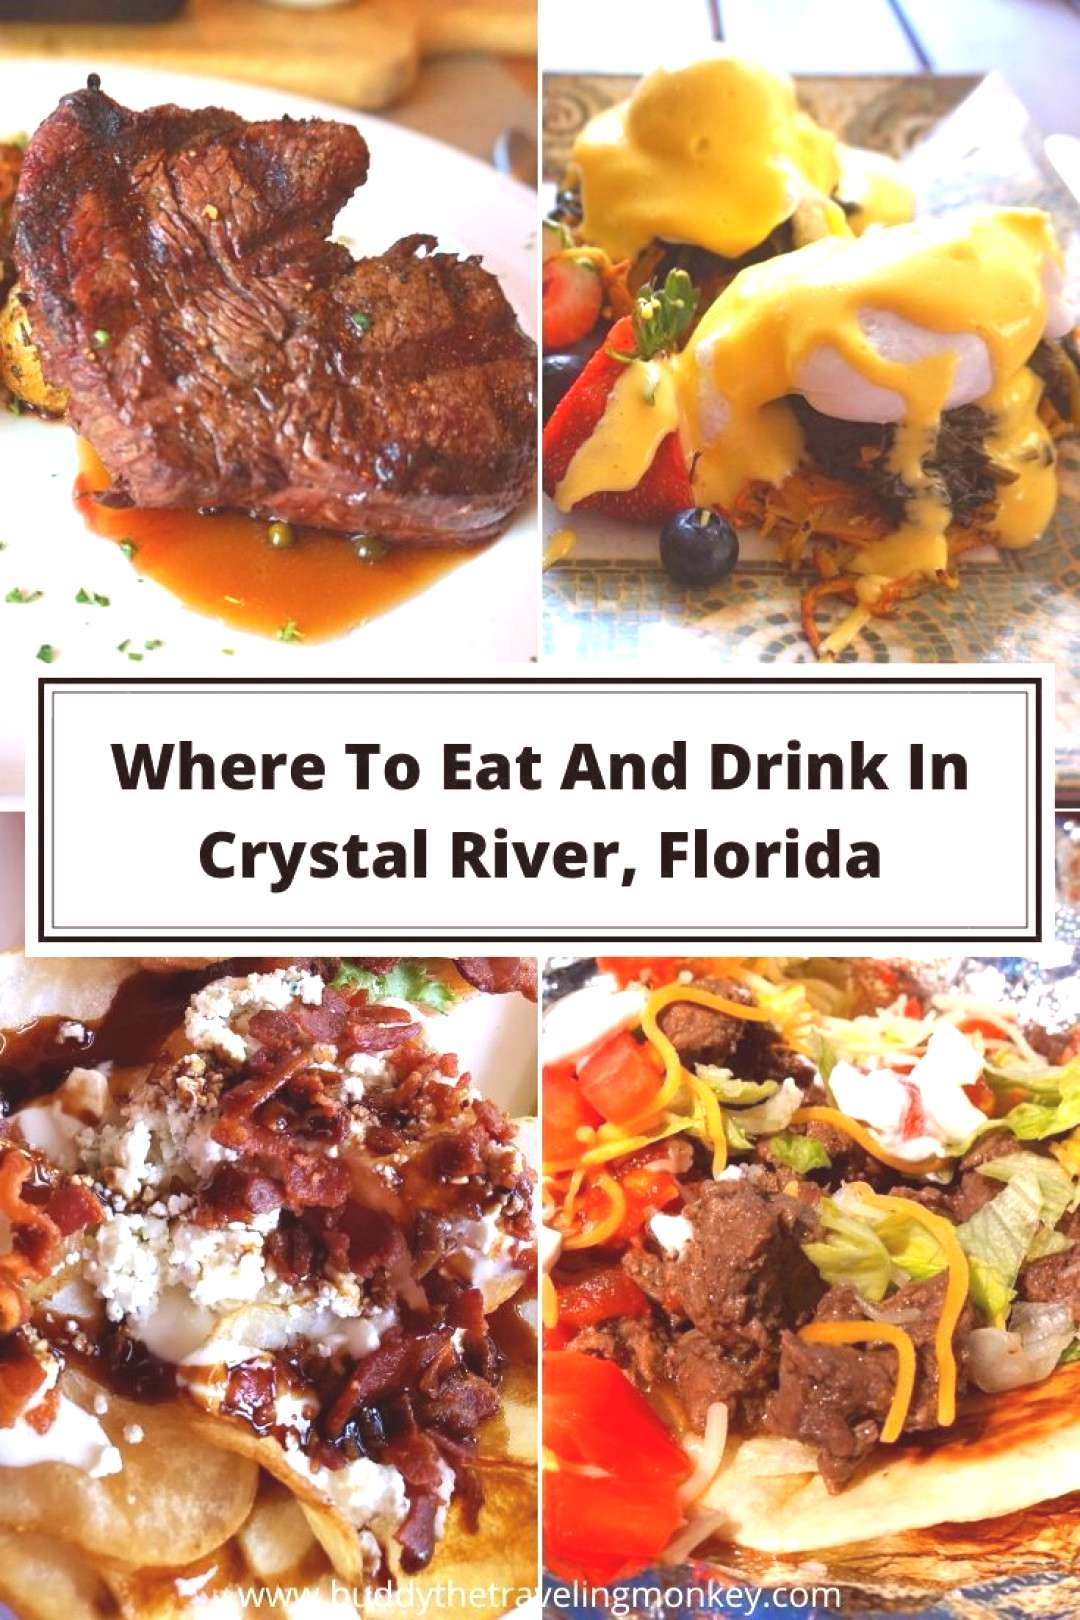 Foodie Travel 461337555580507478 -  We list where to eat and drink in Crystal River, Florida. Every